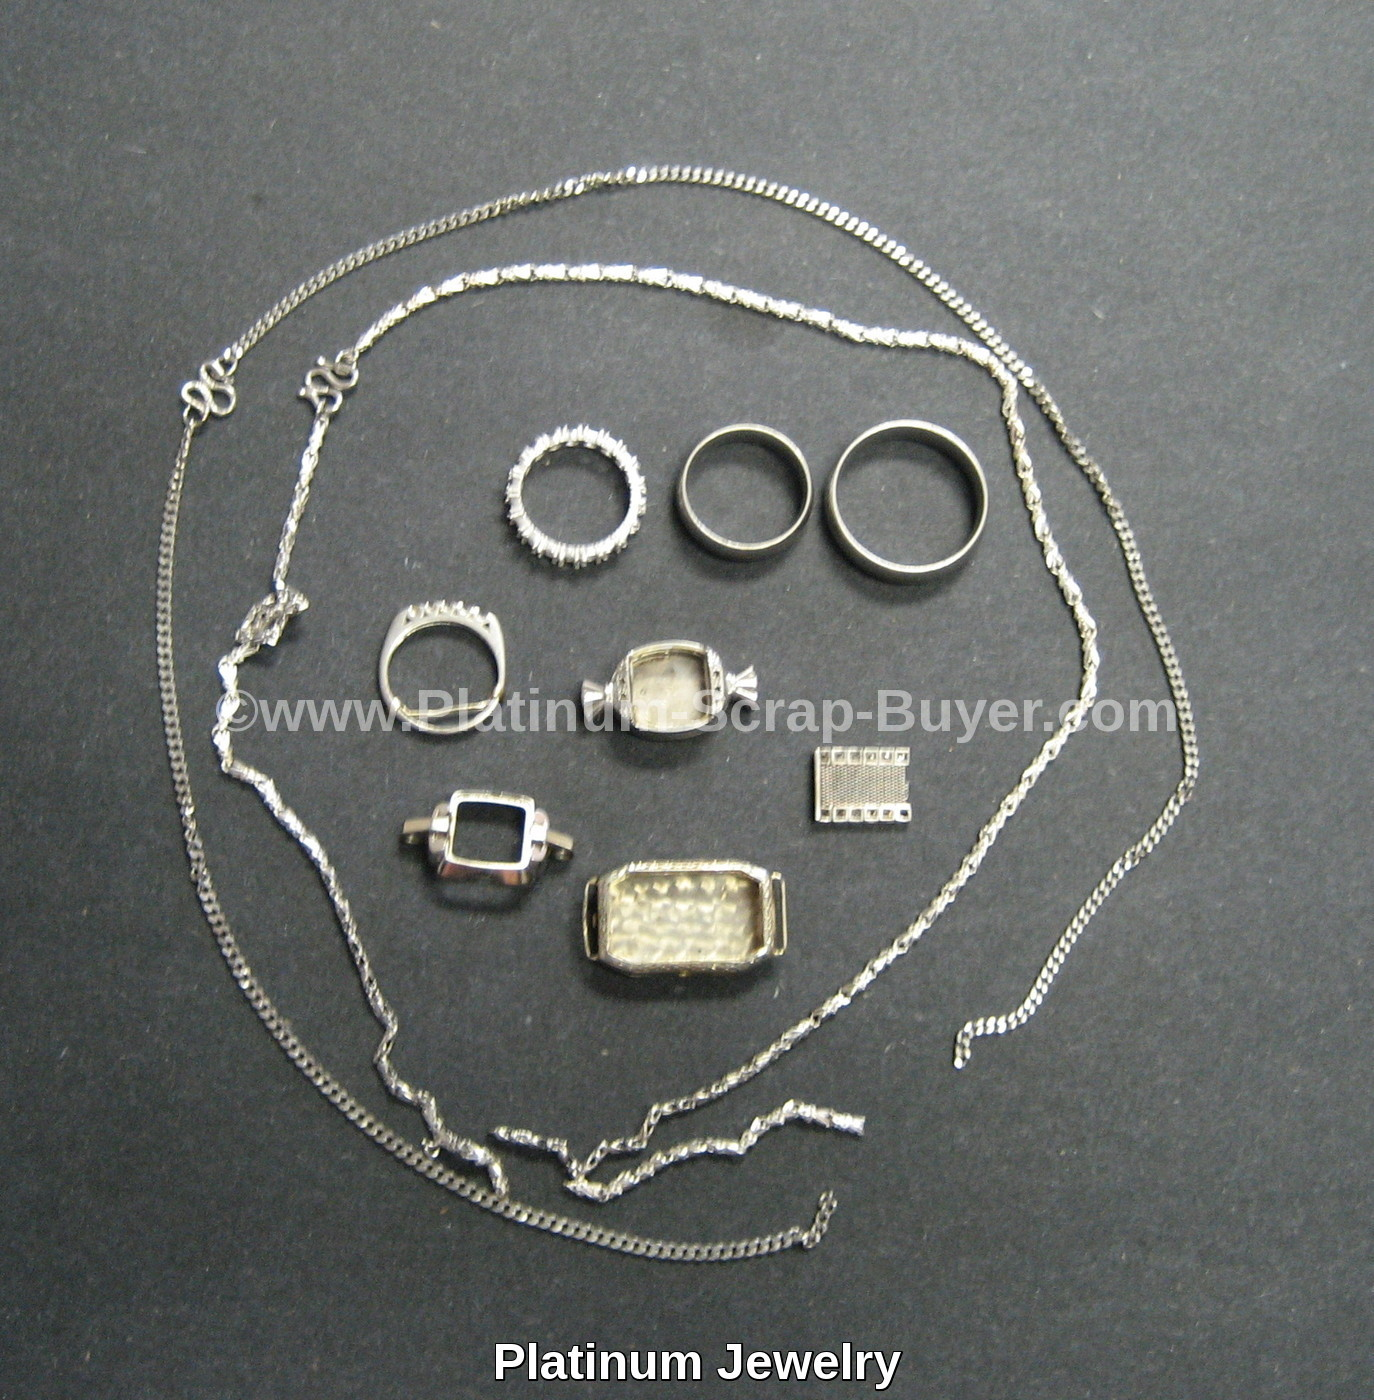 Platinum Jewelry scrap